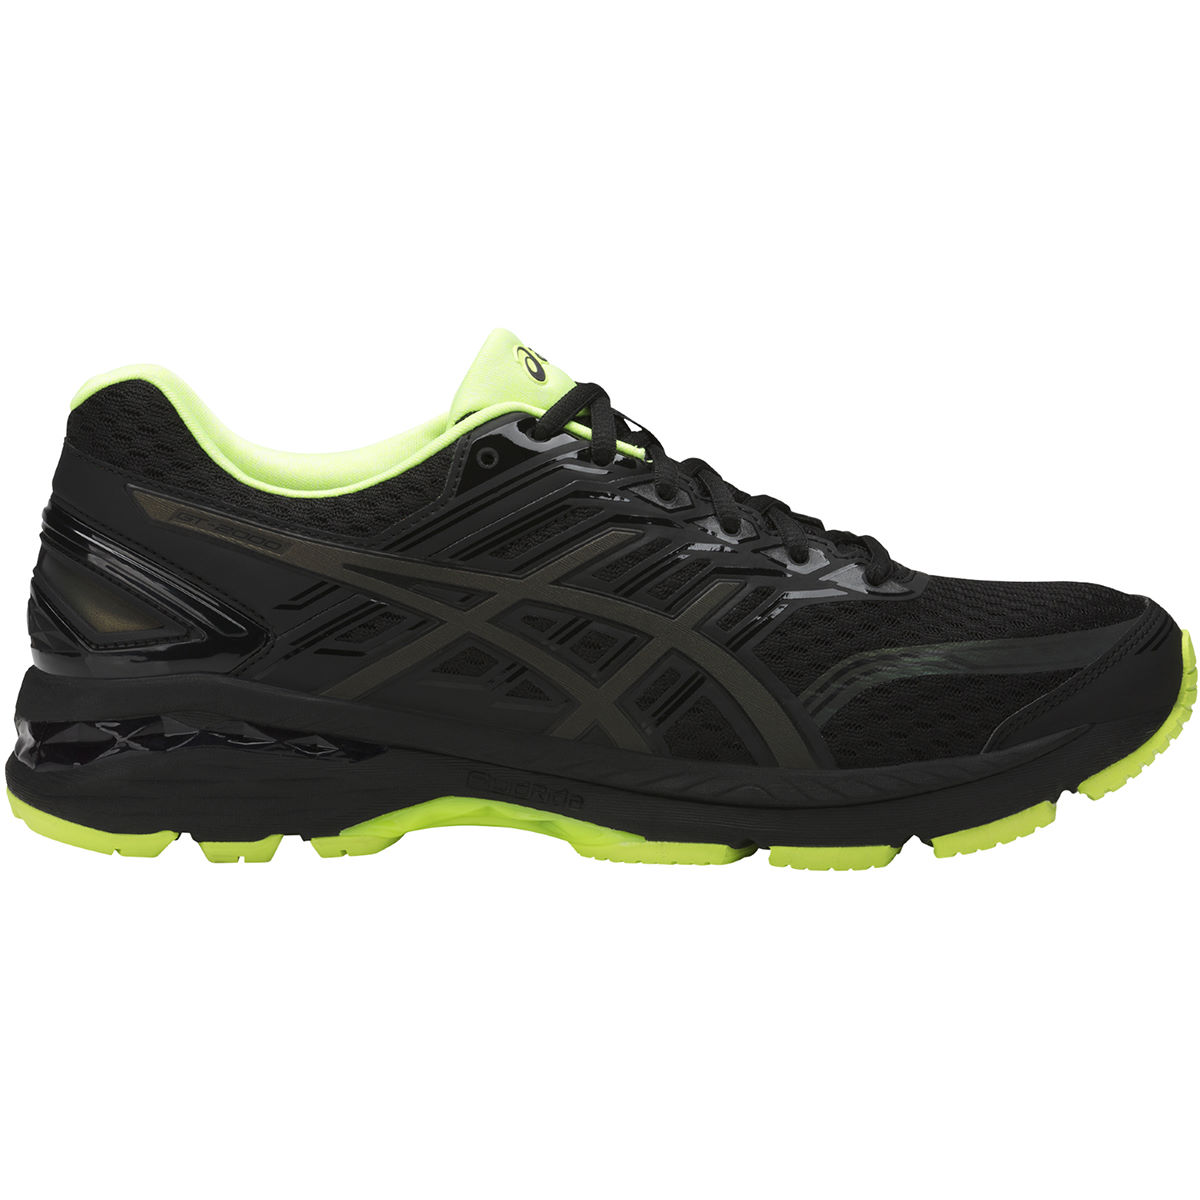 Chaussures Asics GT-2000 5 Lite-Show - UK 11 Black/Safety Yellow/